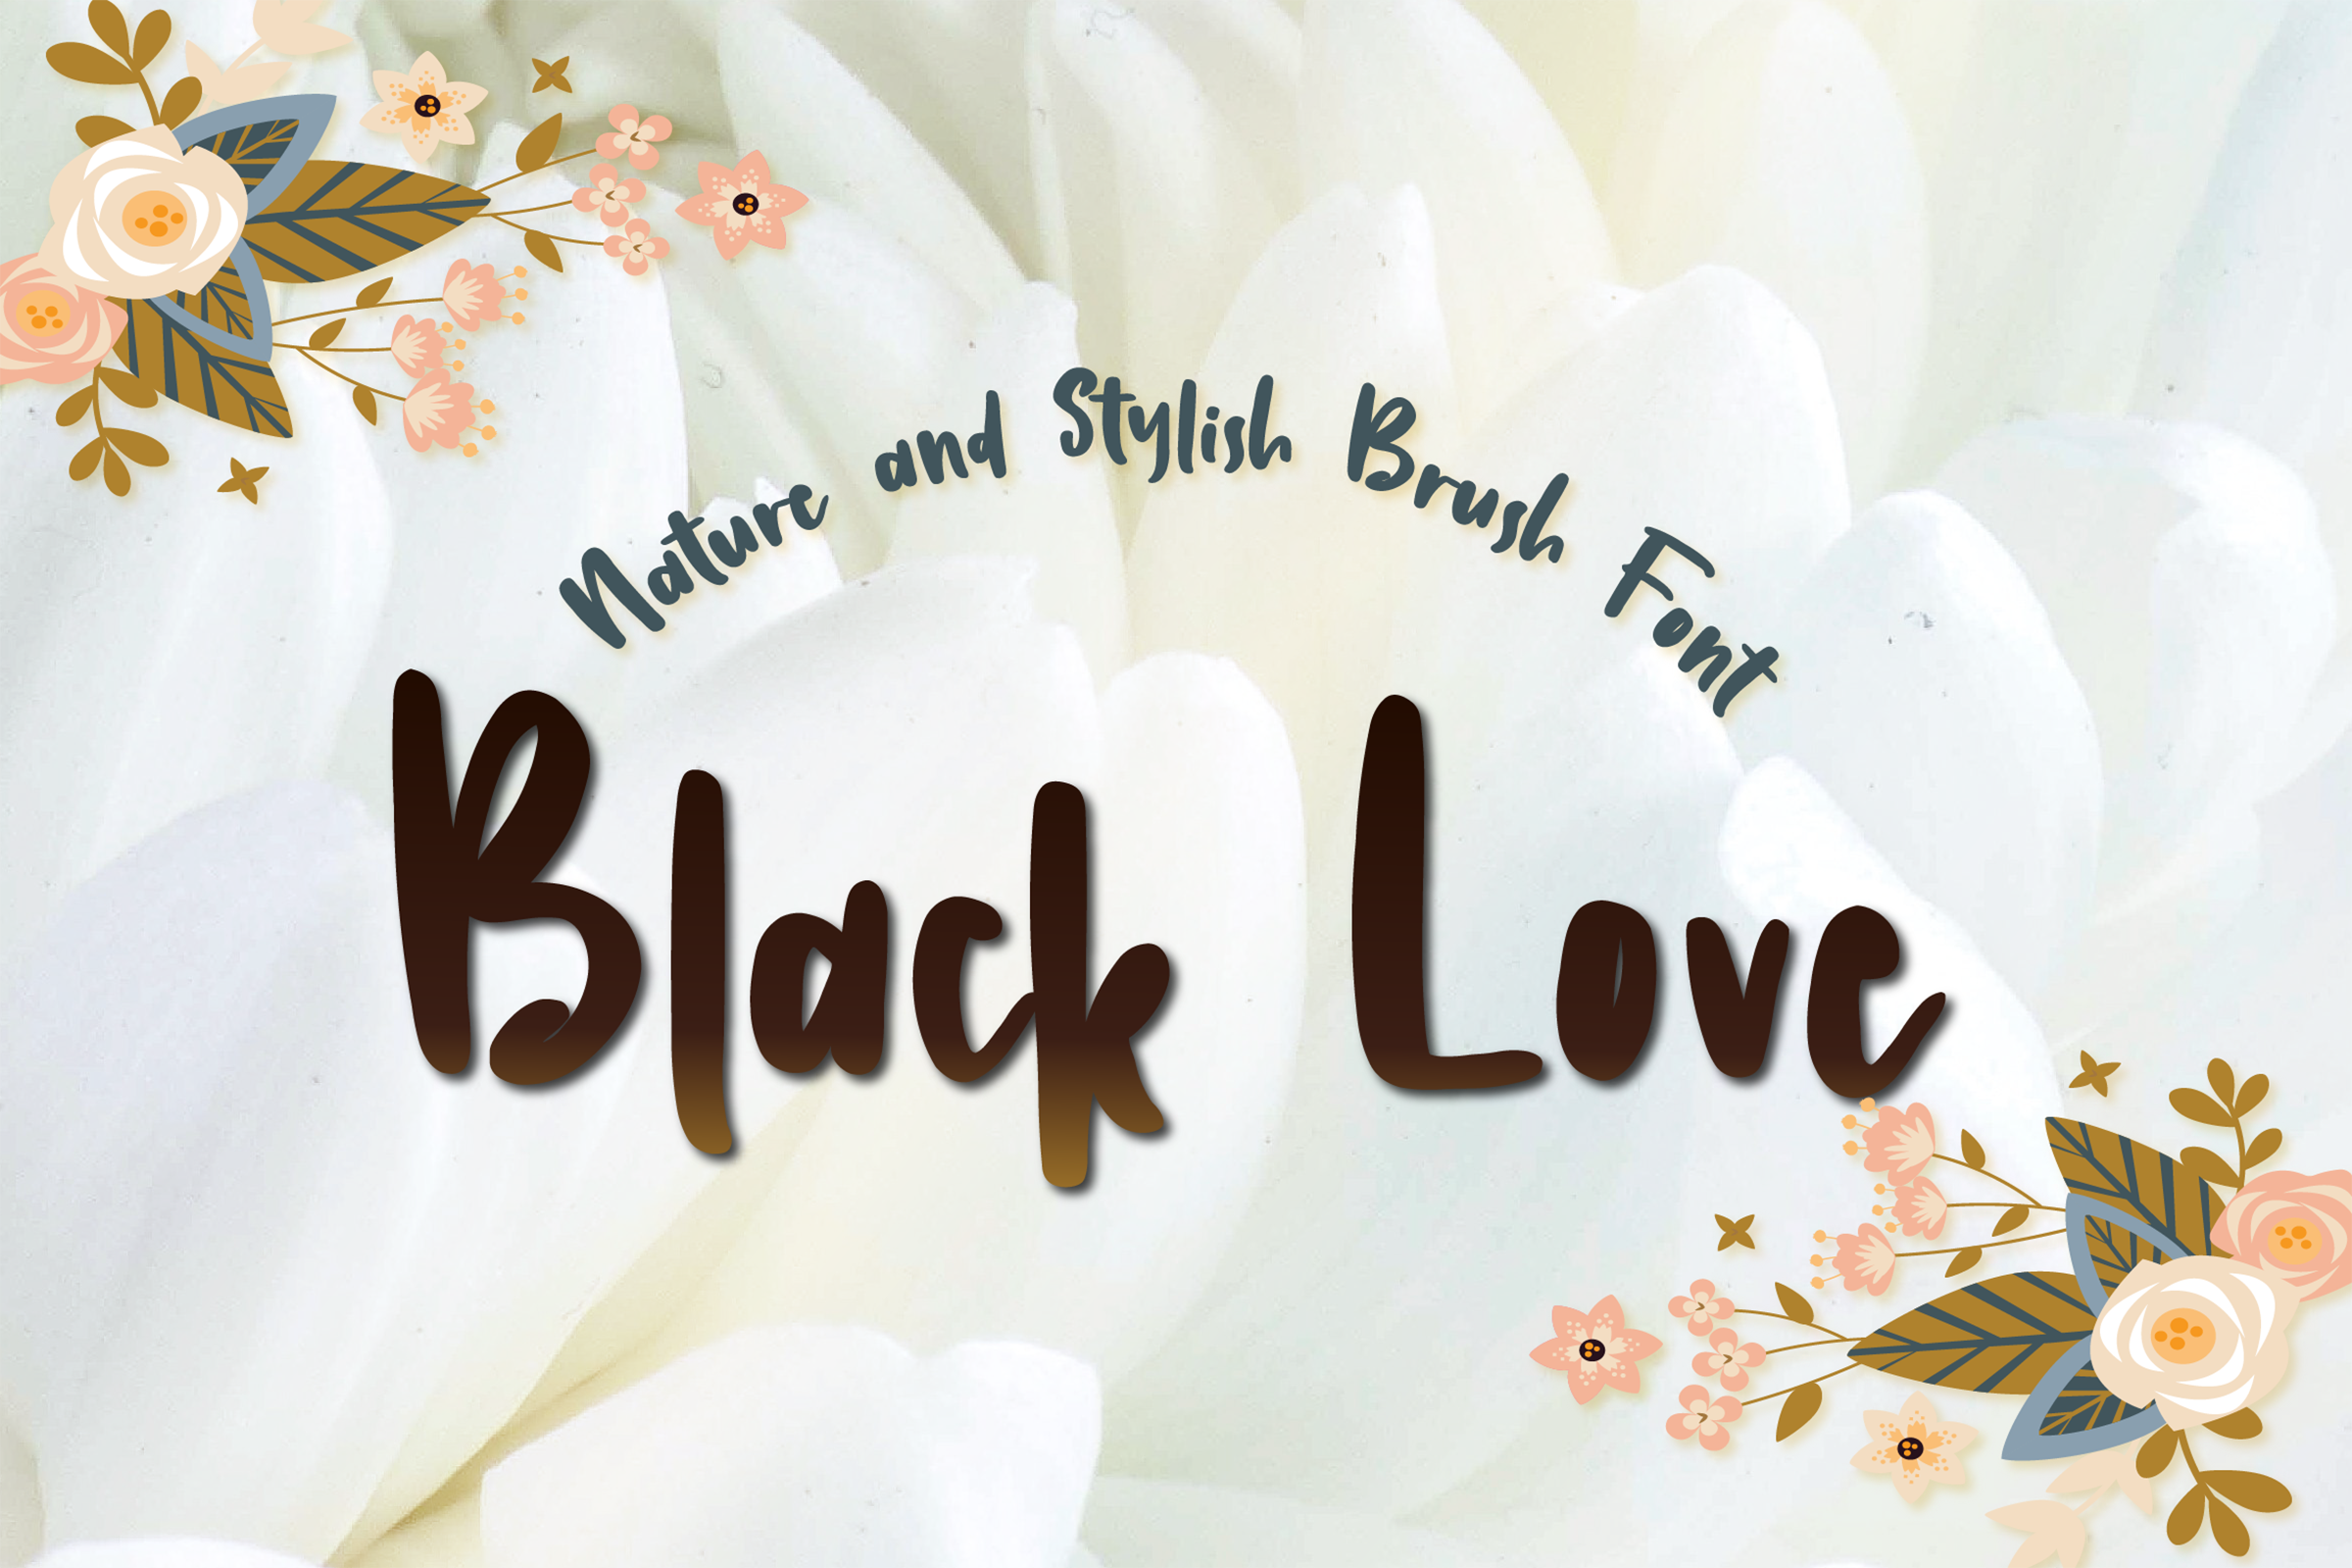 Black Love| Nature Handbrush example image 1